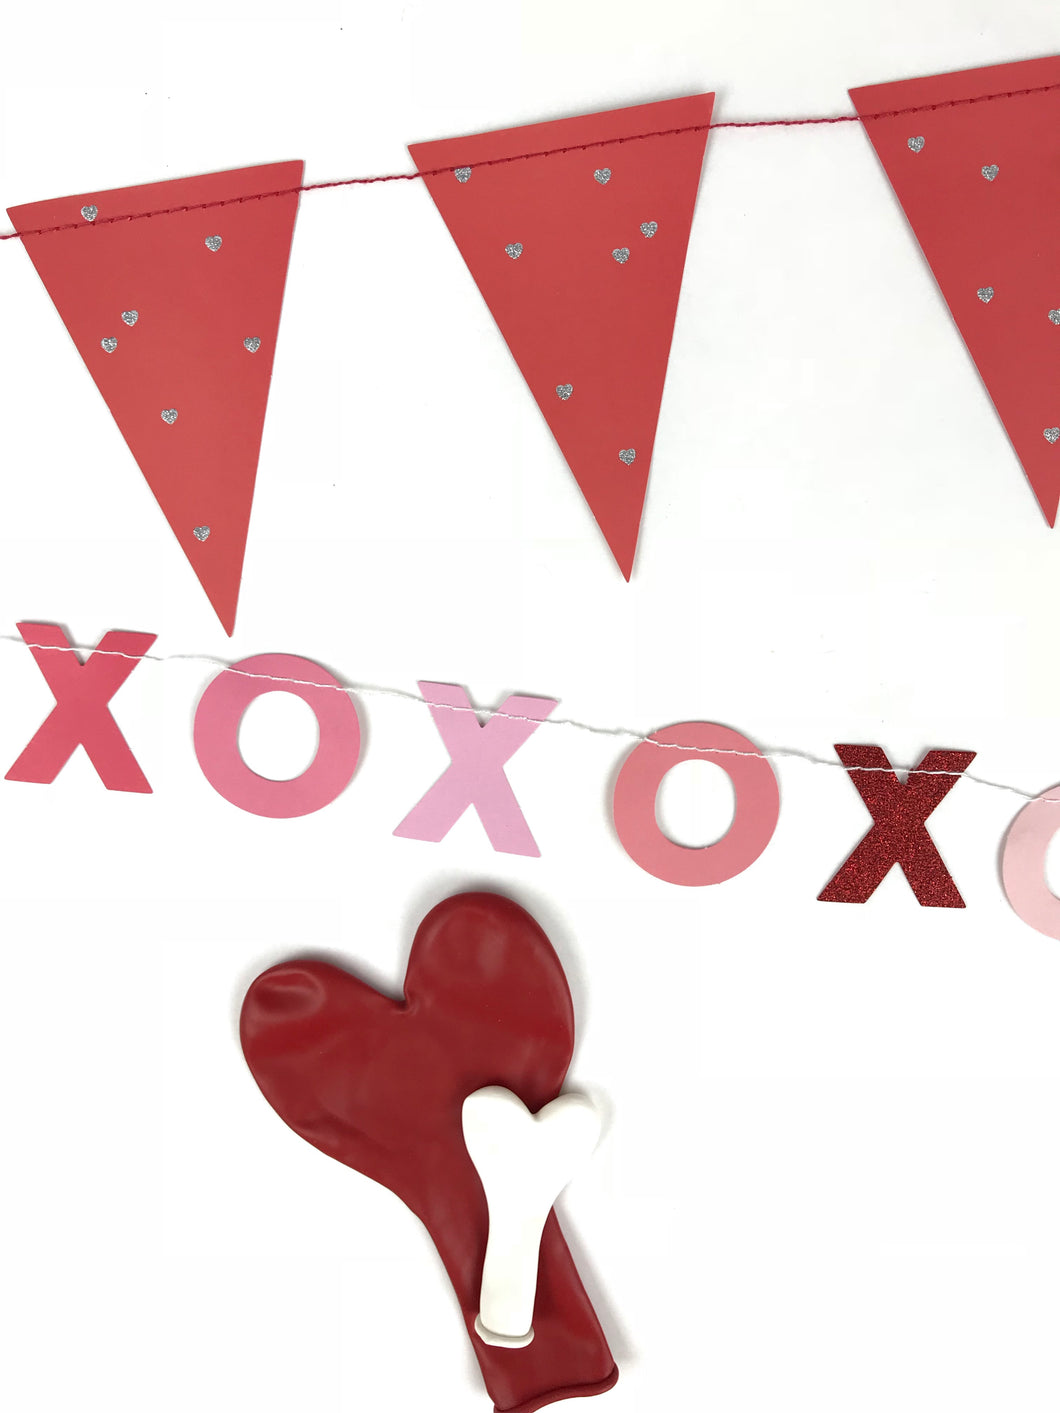 XOXO and pennant banner